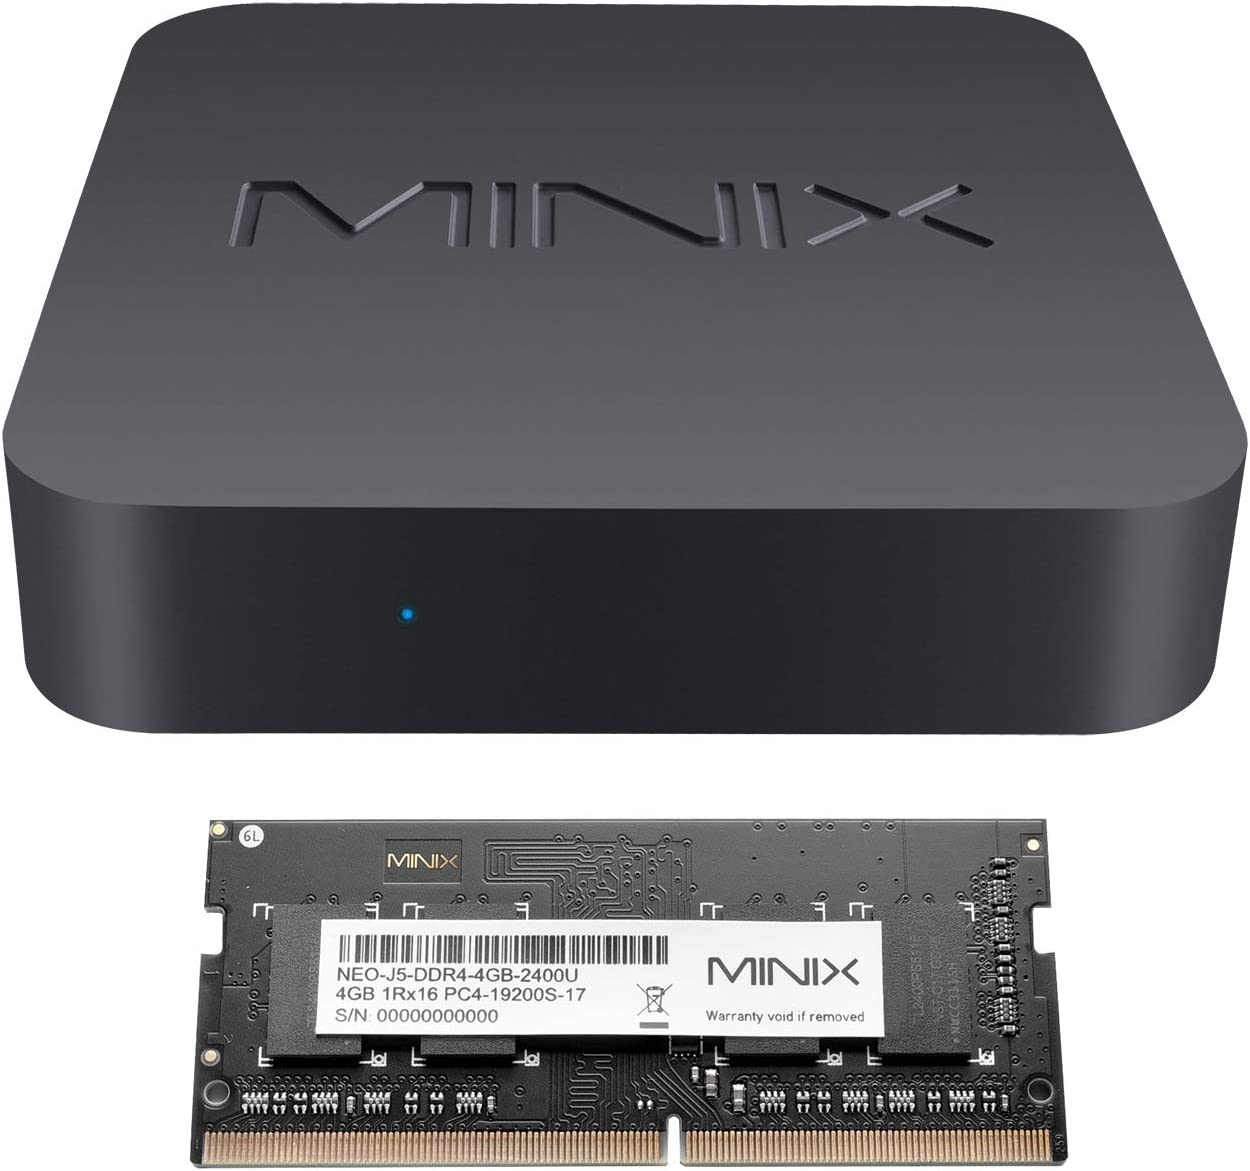 MINIX NEO J50C-4, 64GB Intel Pentium Silver Mini PC with Windows 10 Pro (64-bit) [8GB/Dual-Band Wi-Fi/Gigabit Ethernet/4K @ 60Hz/Triple Display/USB-C/Auto Power On/Vesa Mount]